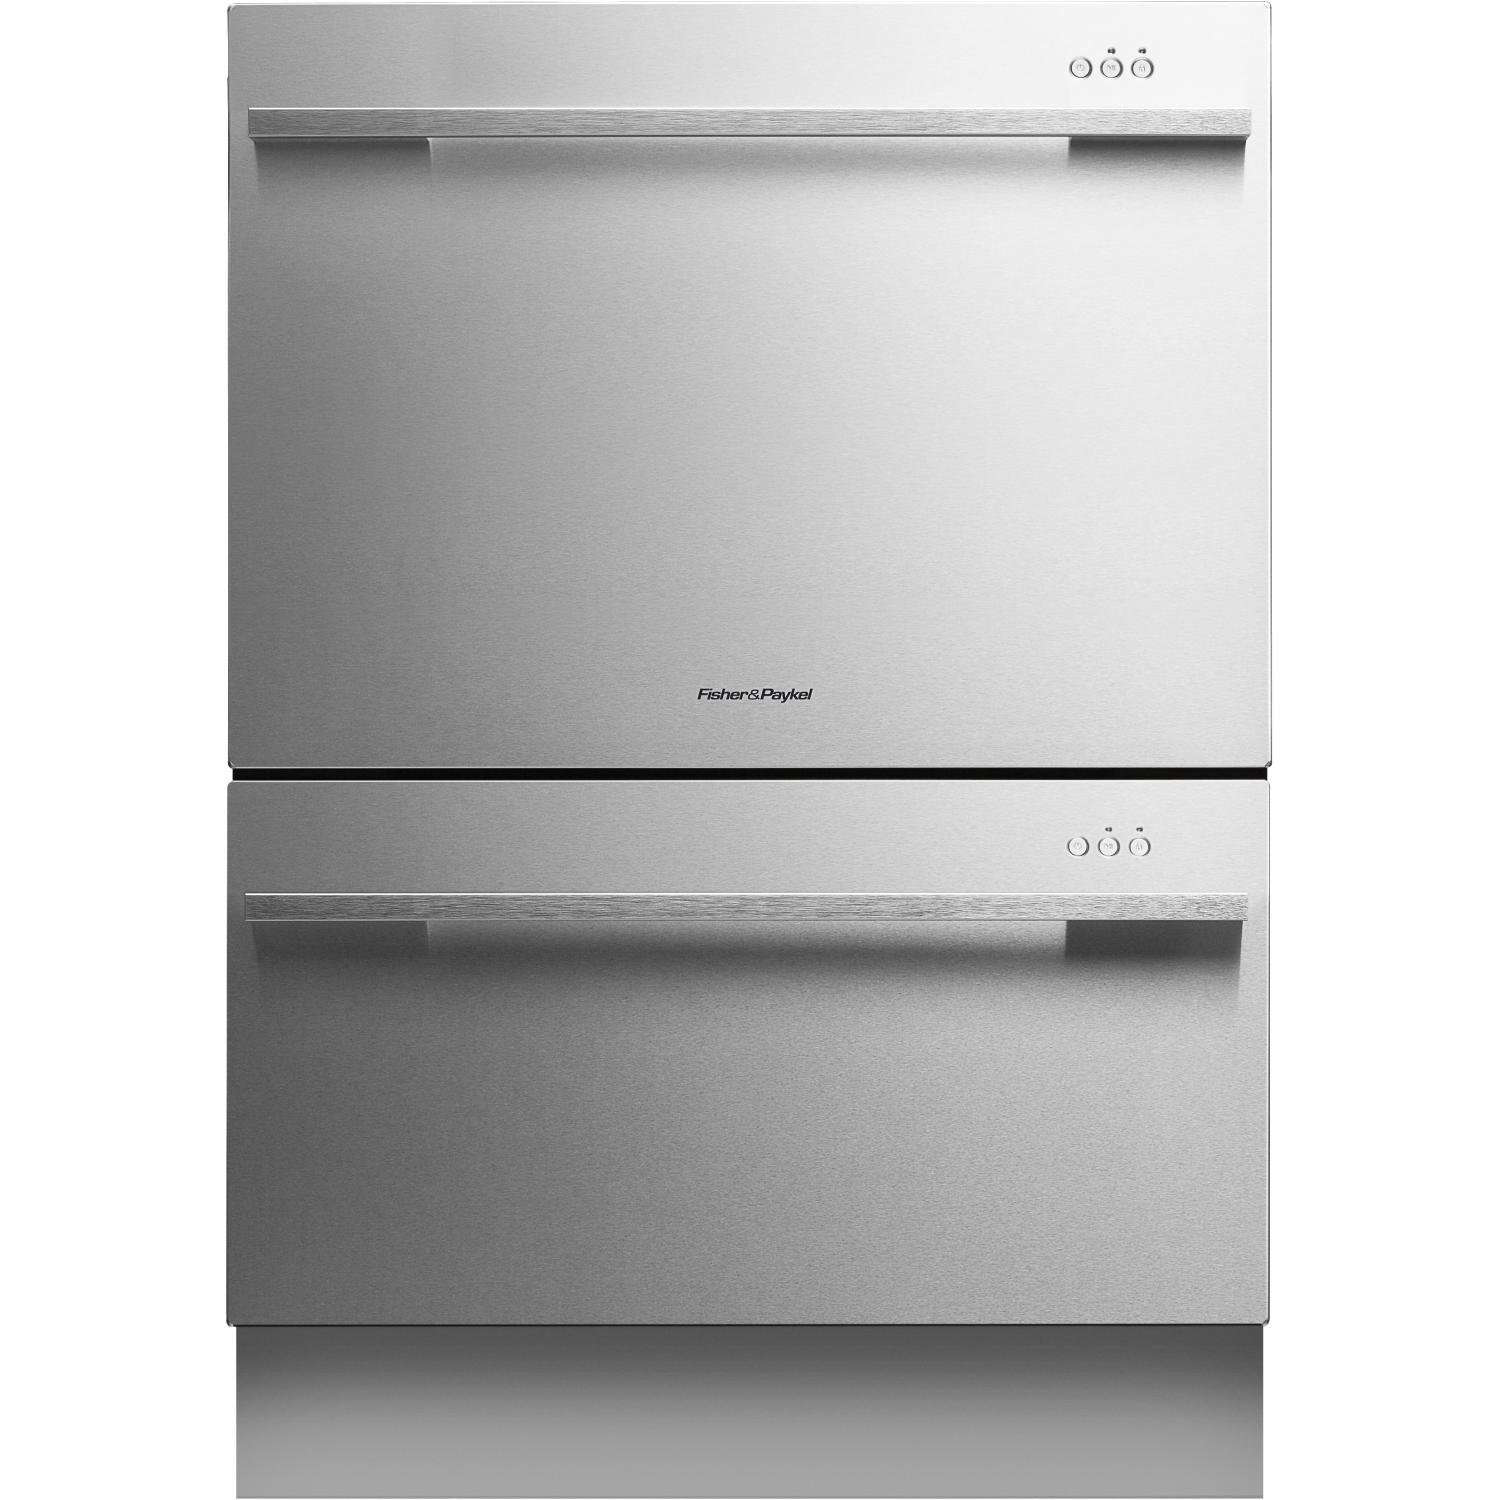 Fisher paykel dishdrawer tall series ss 24 in semi integrated dishwasher - Fisher paykel dishwasher drawer reviews ...